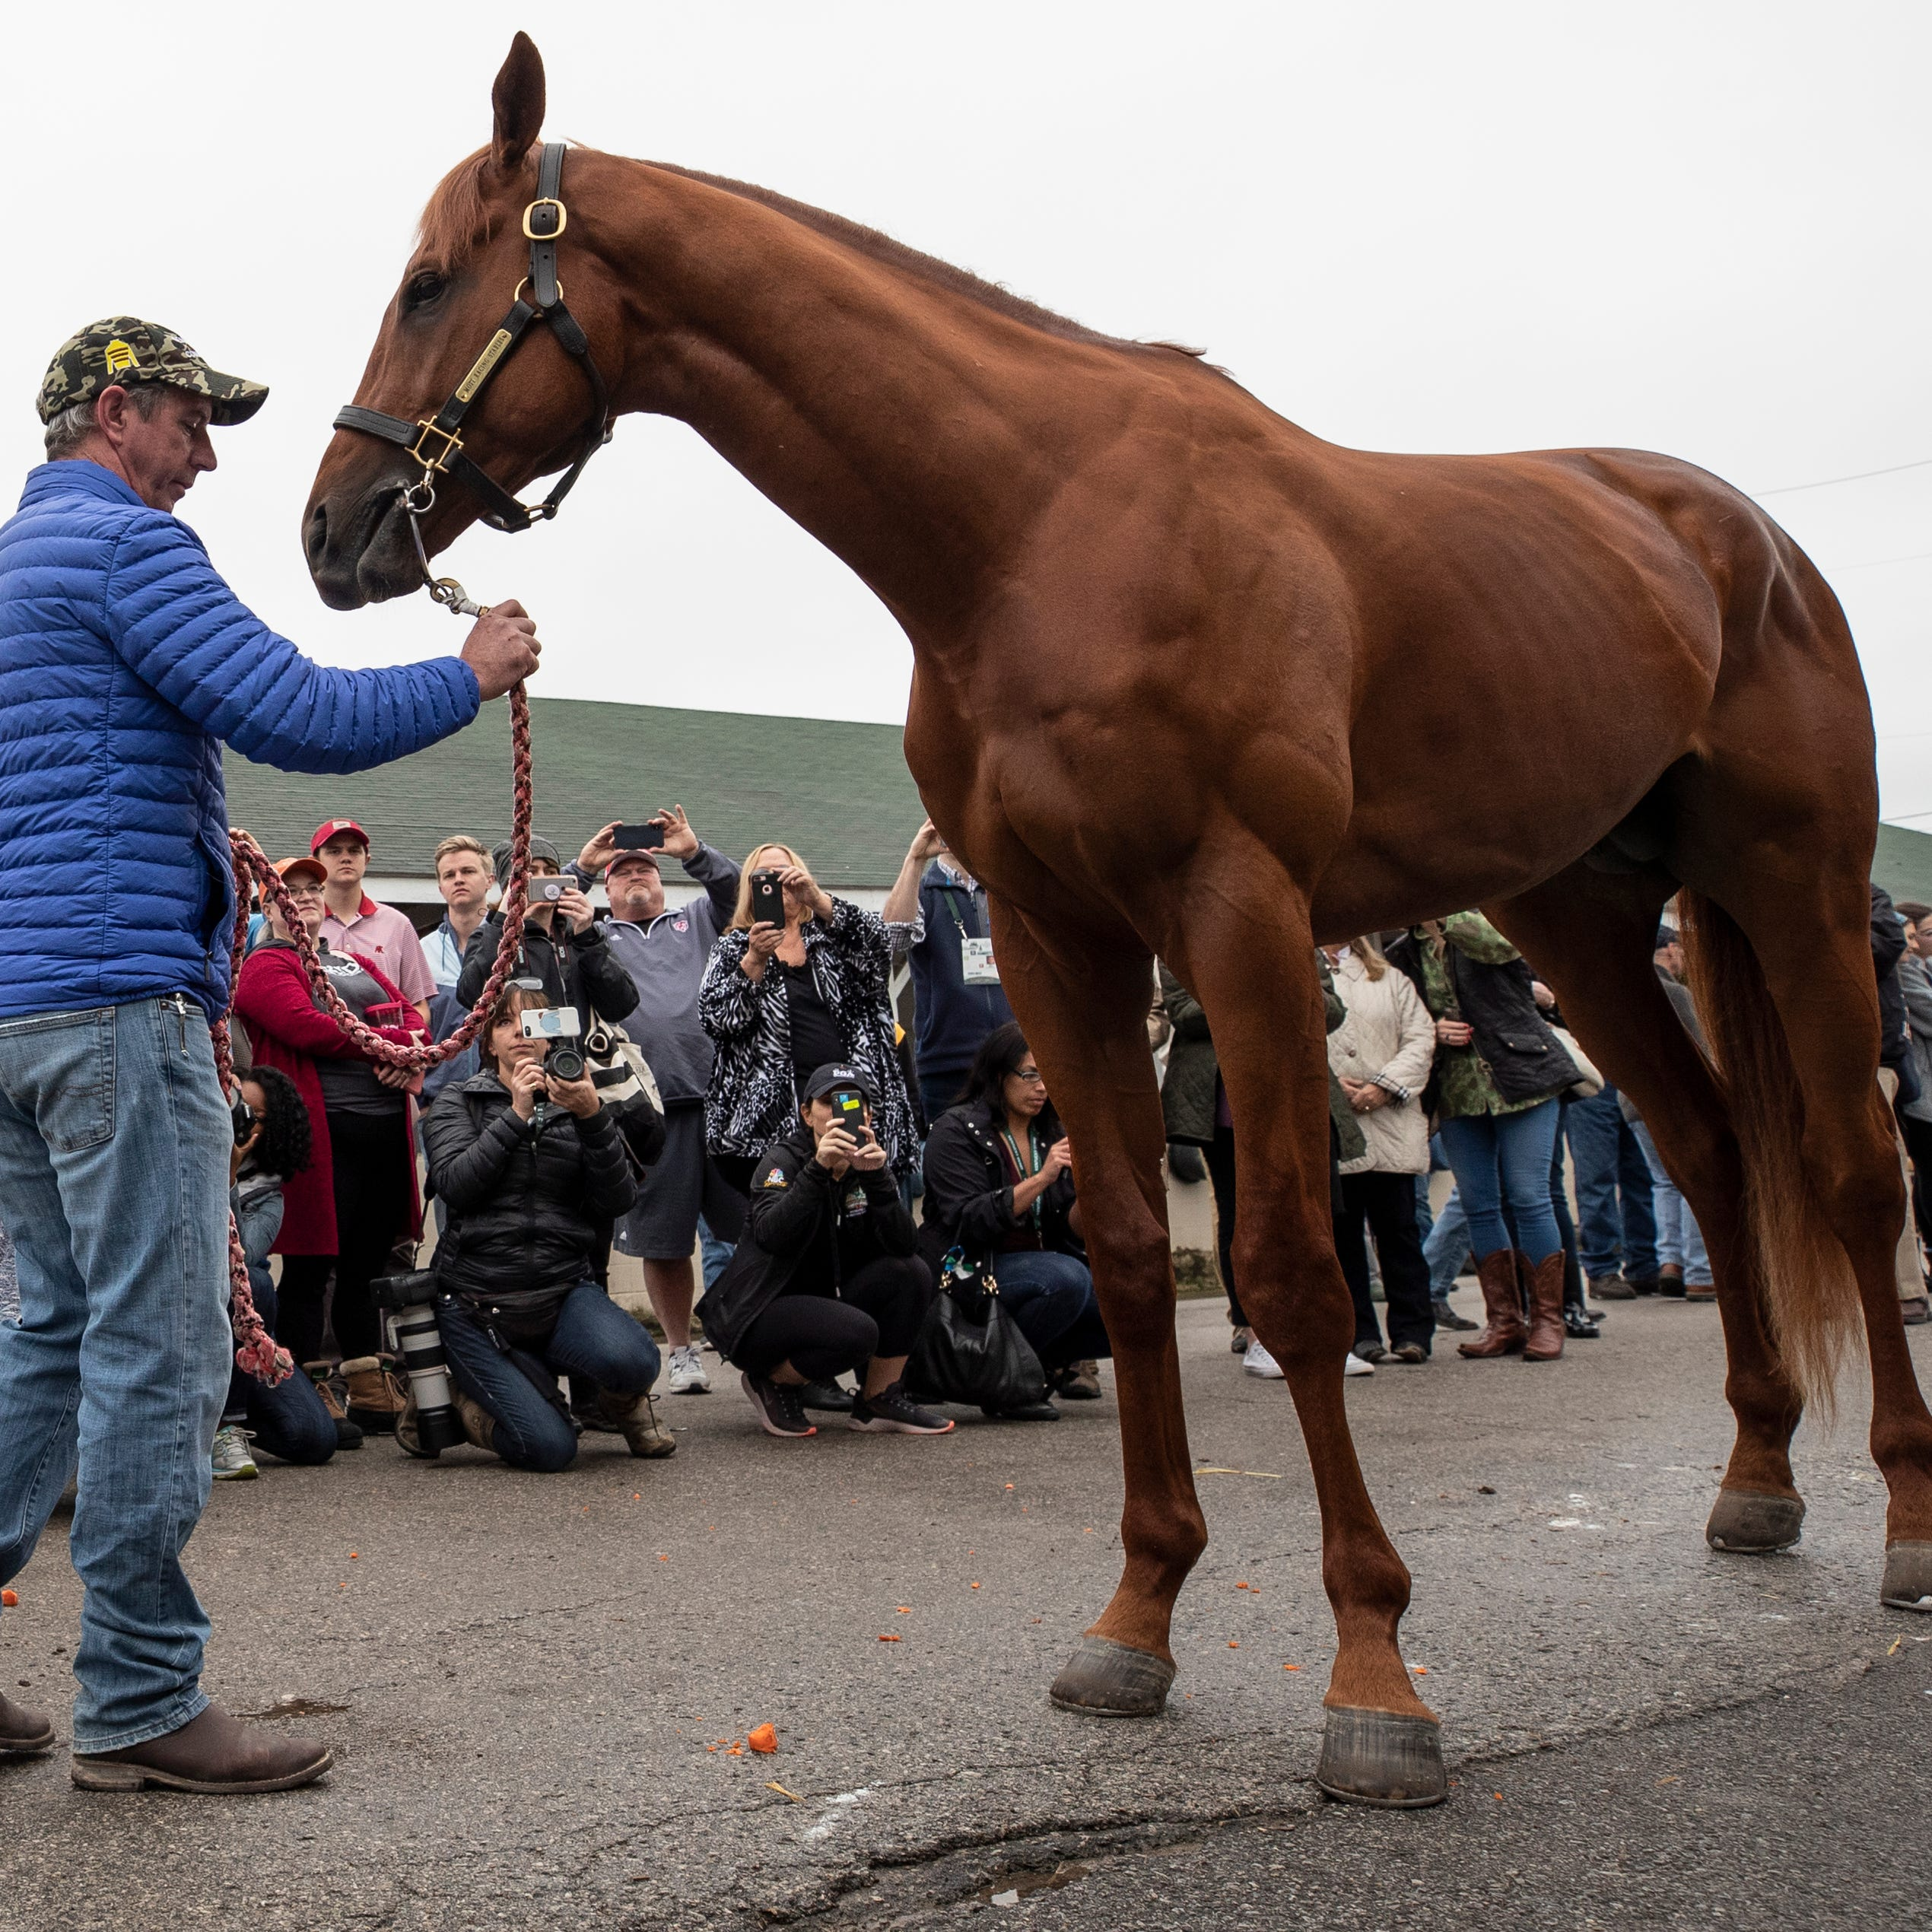 For the 1st time in 23 years, the Kentucky Derby winner won't be in the Preakness